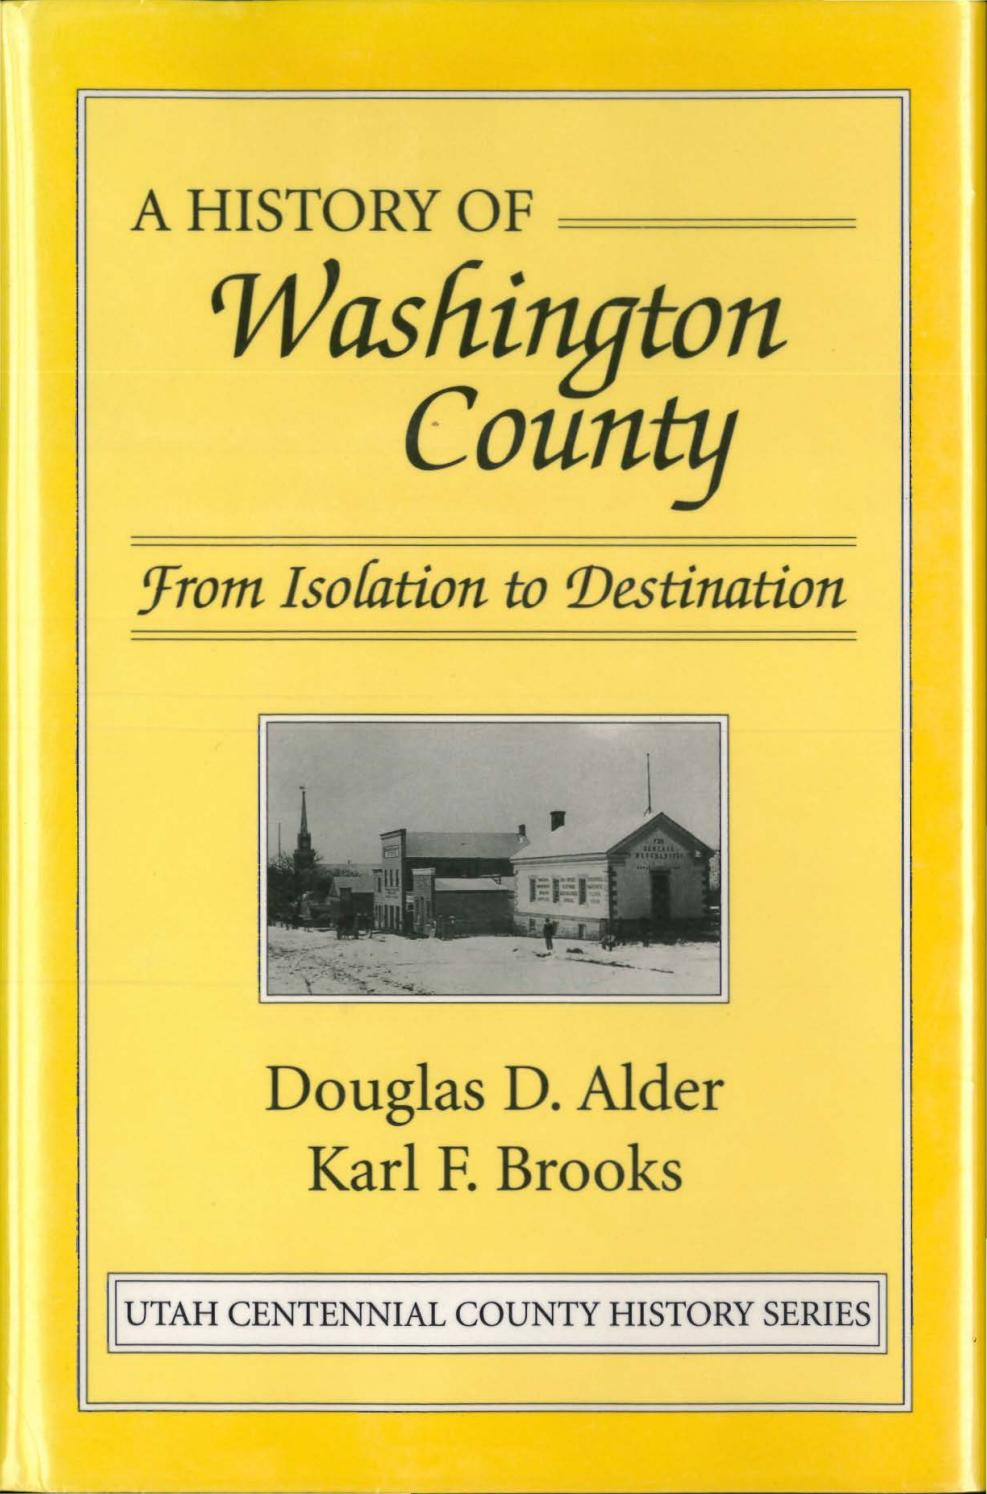 Utah Centennial County History Series Washington County